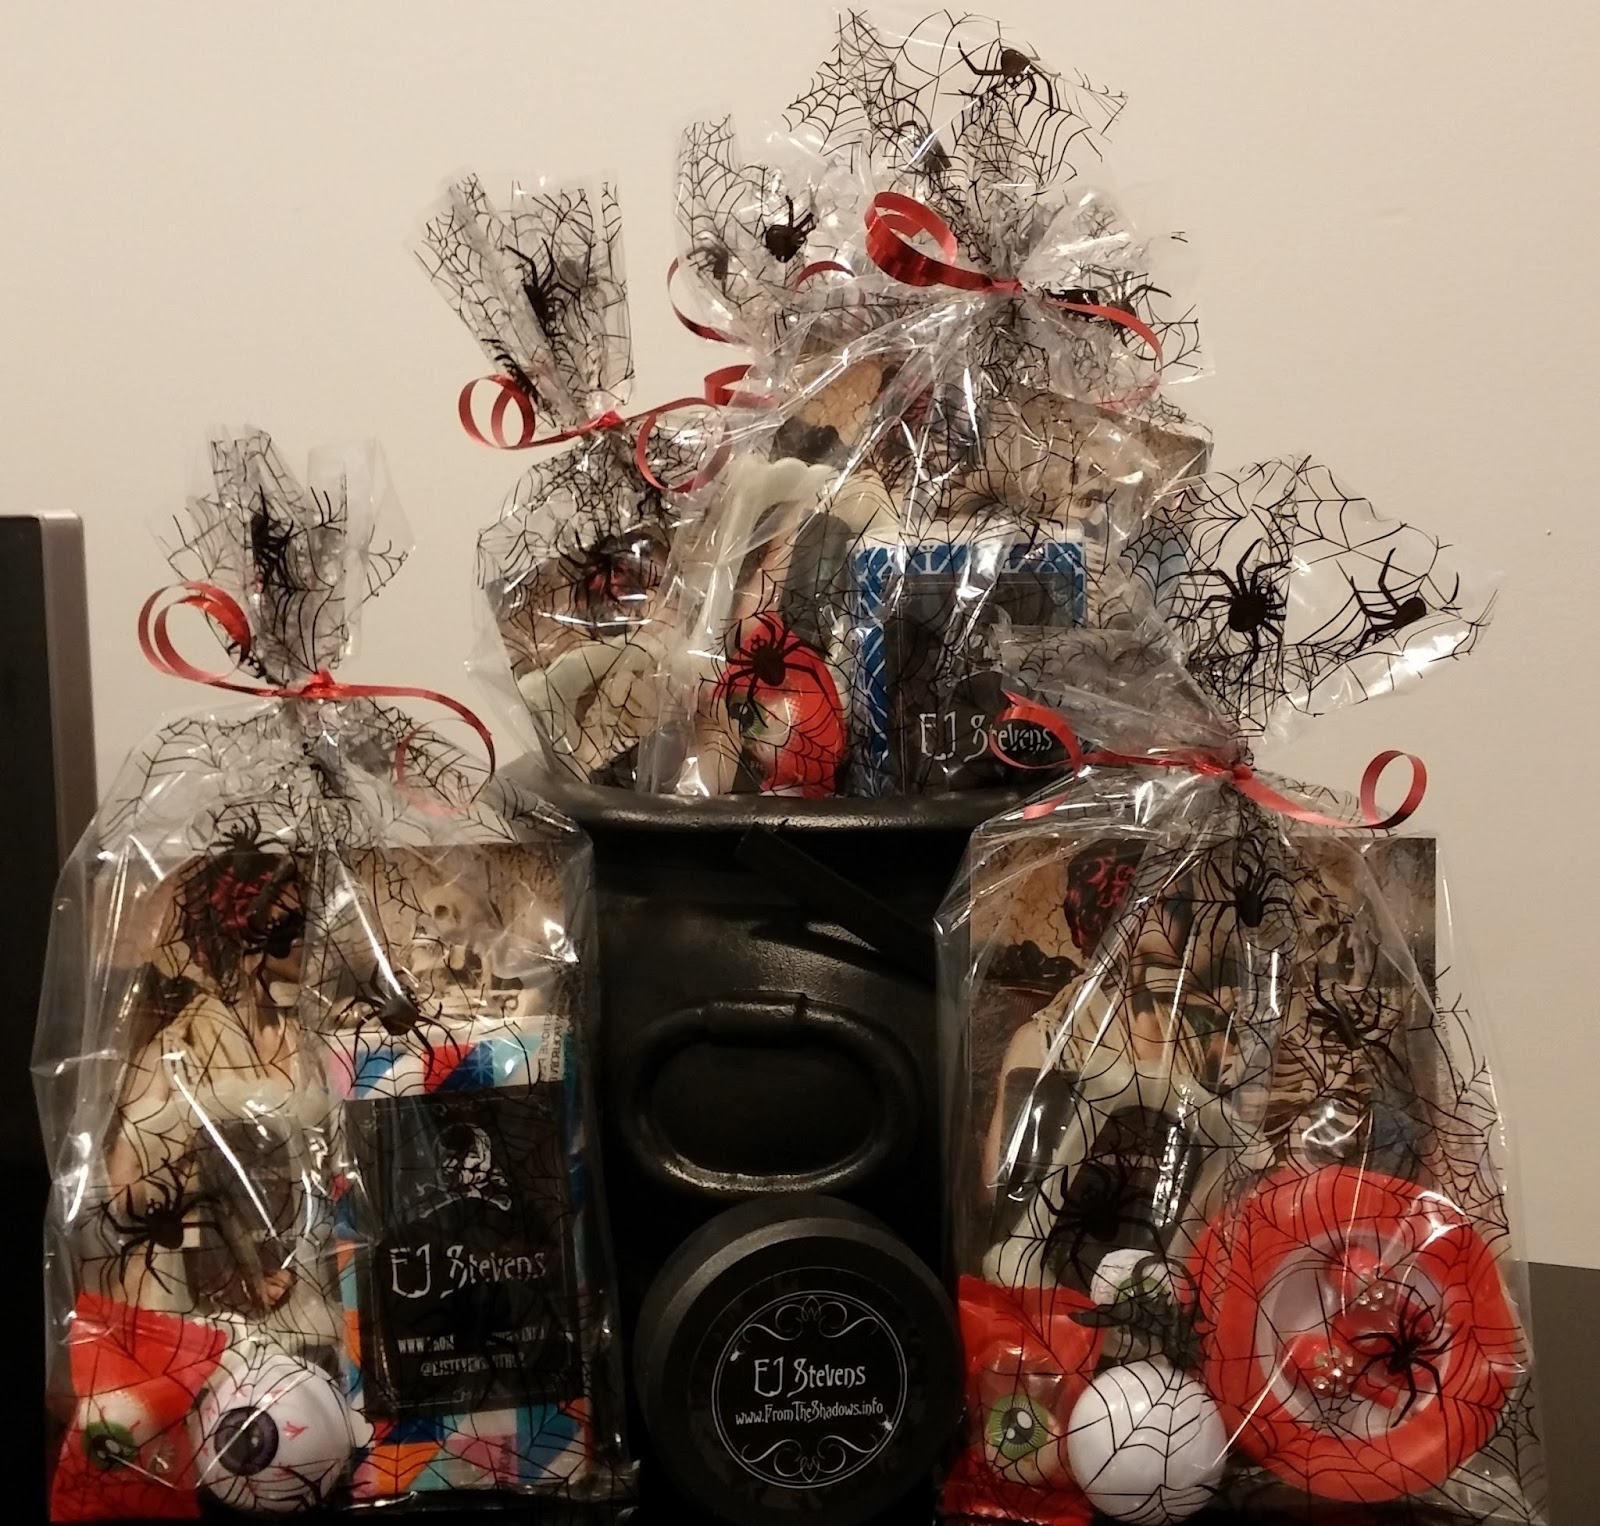 Blood And Mistletoe Paperback Book Launch At Hallowread Swag Bags